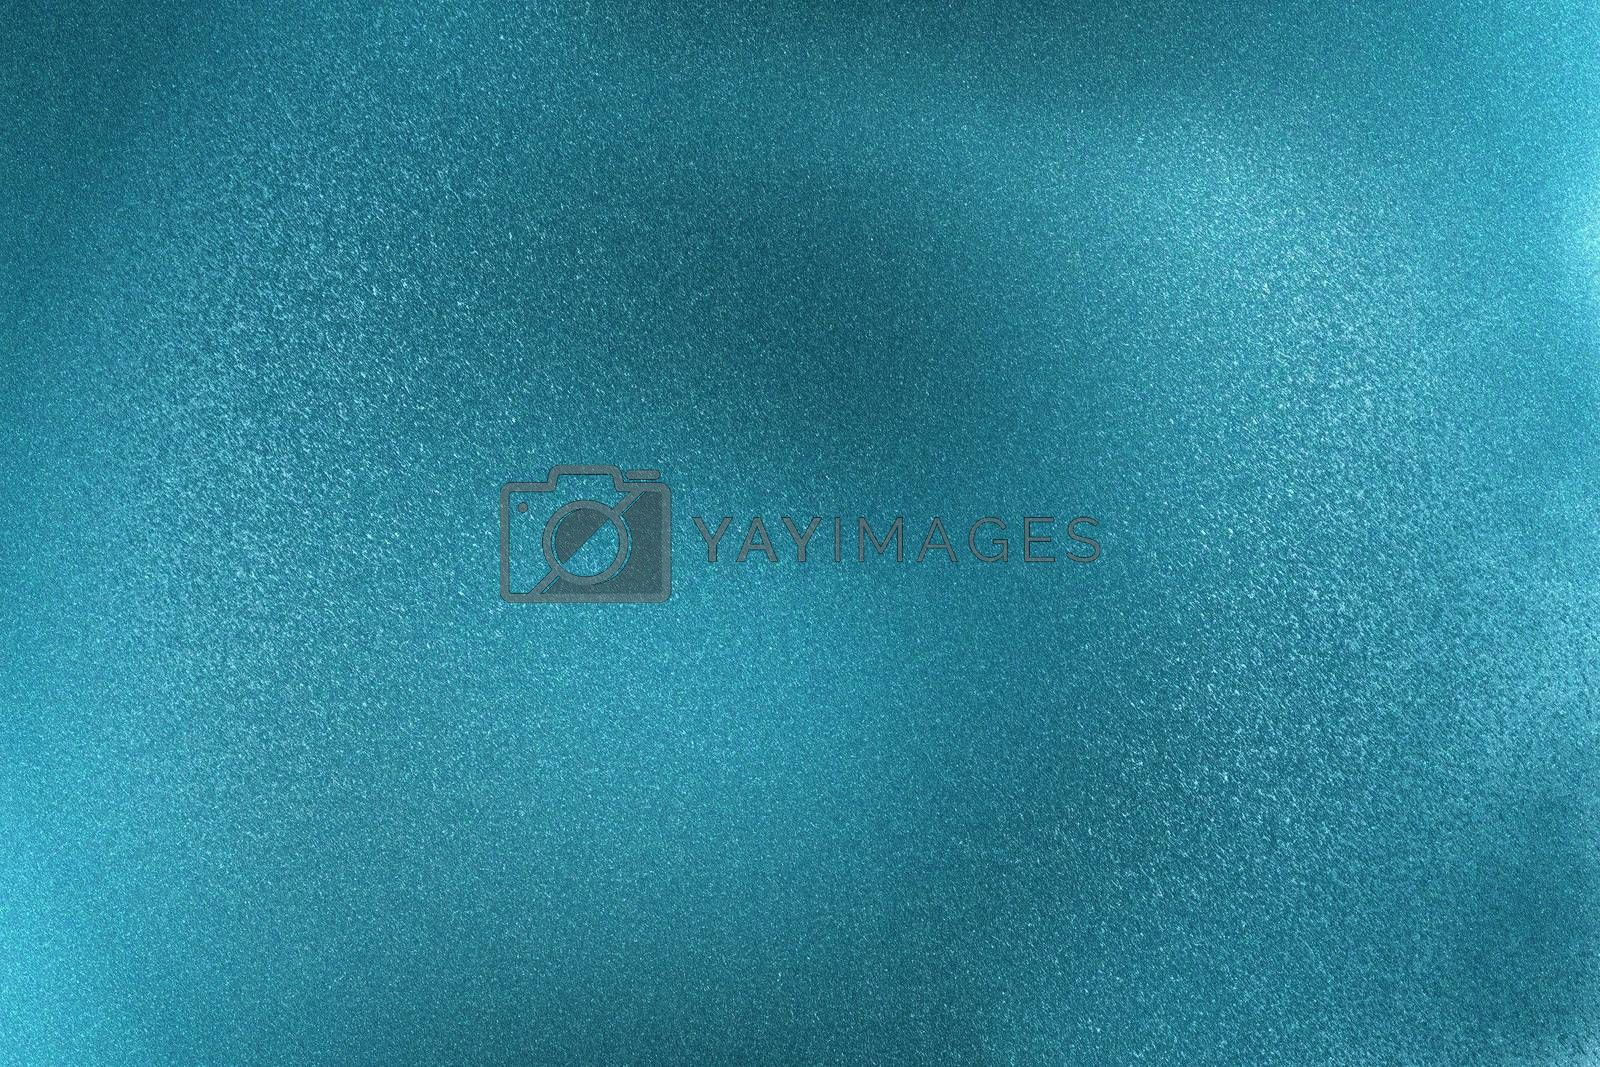 Glowing brushed blue metallic wall surface, abstract texture background by mouu007